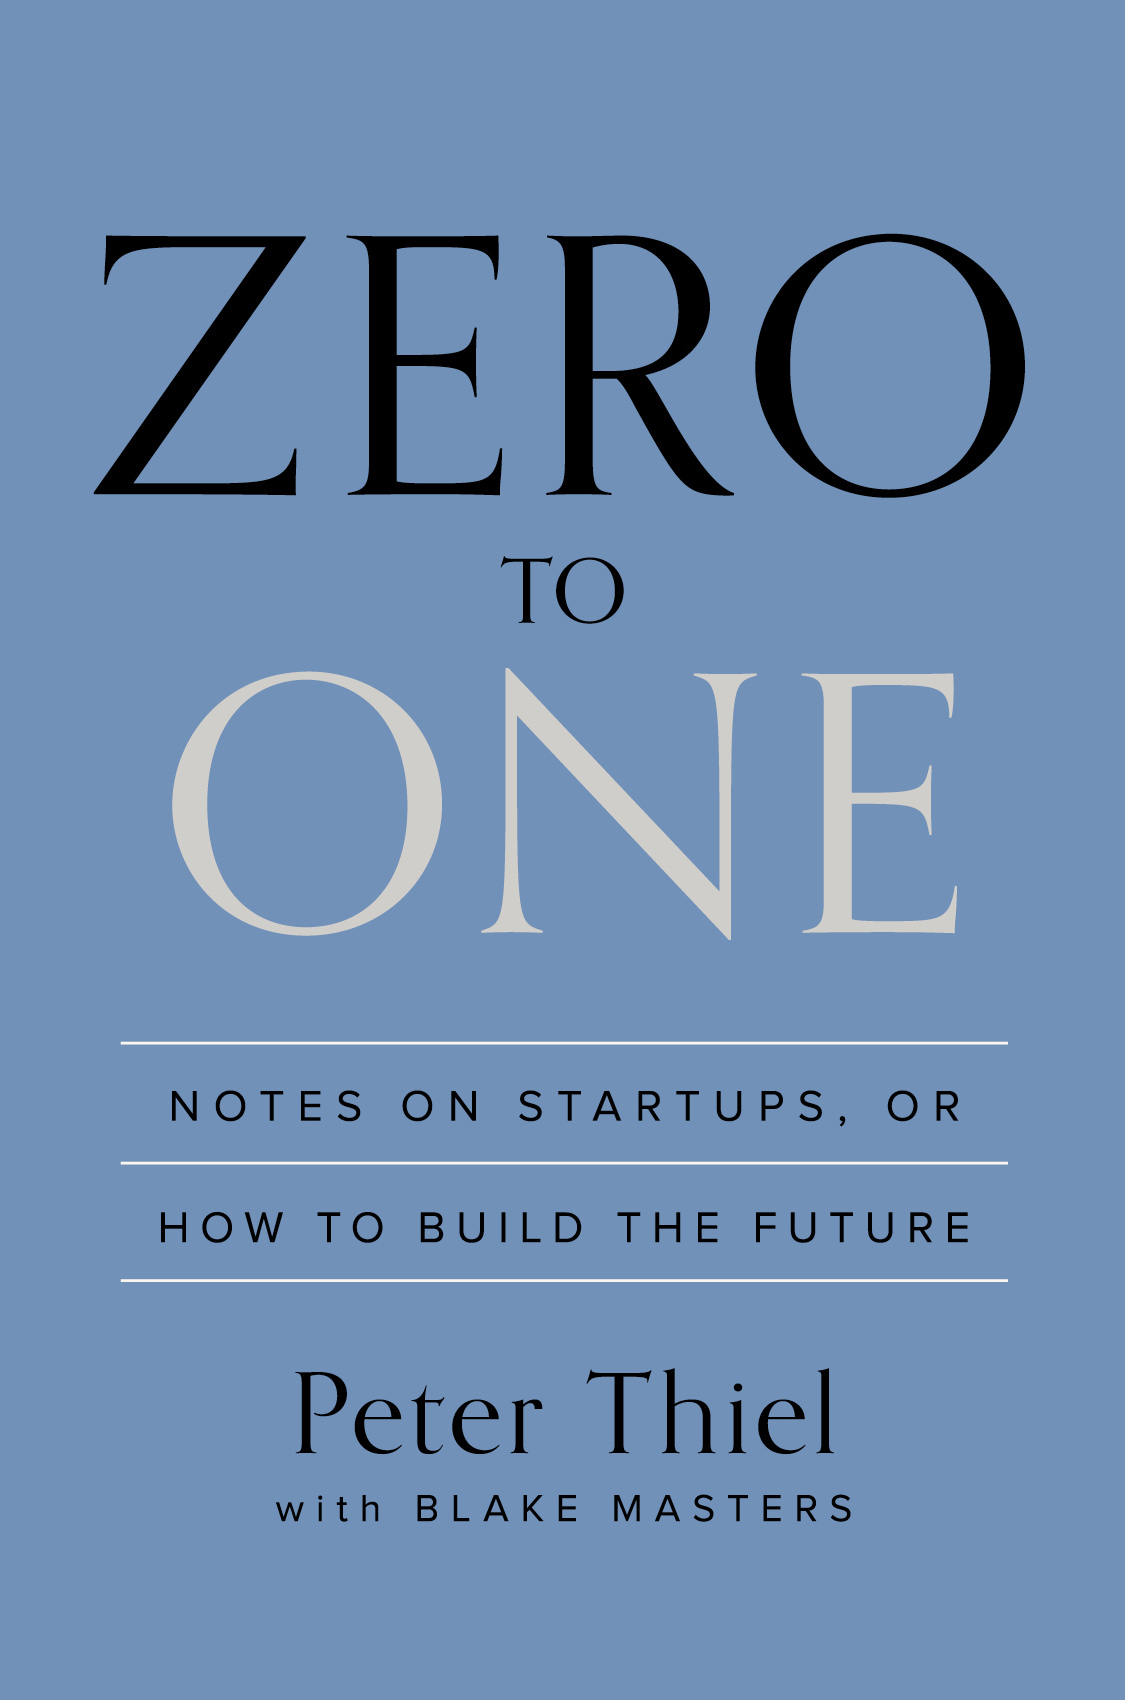 executive book summary - zero to one